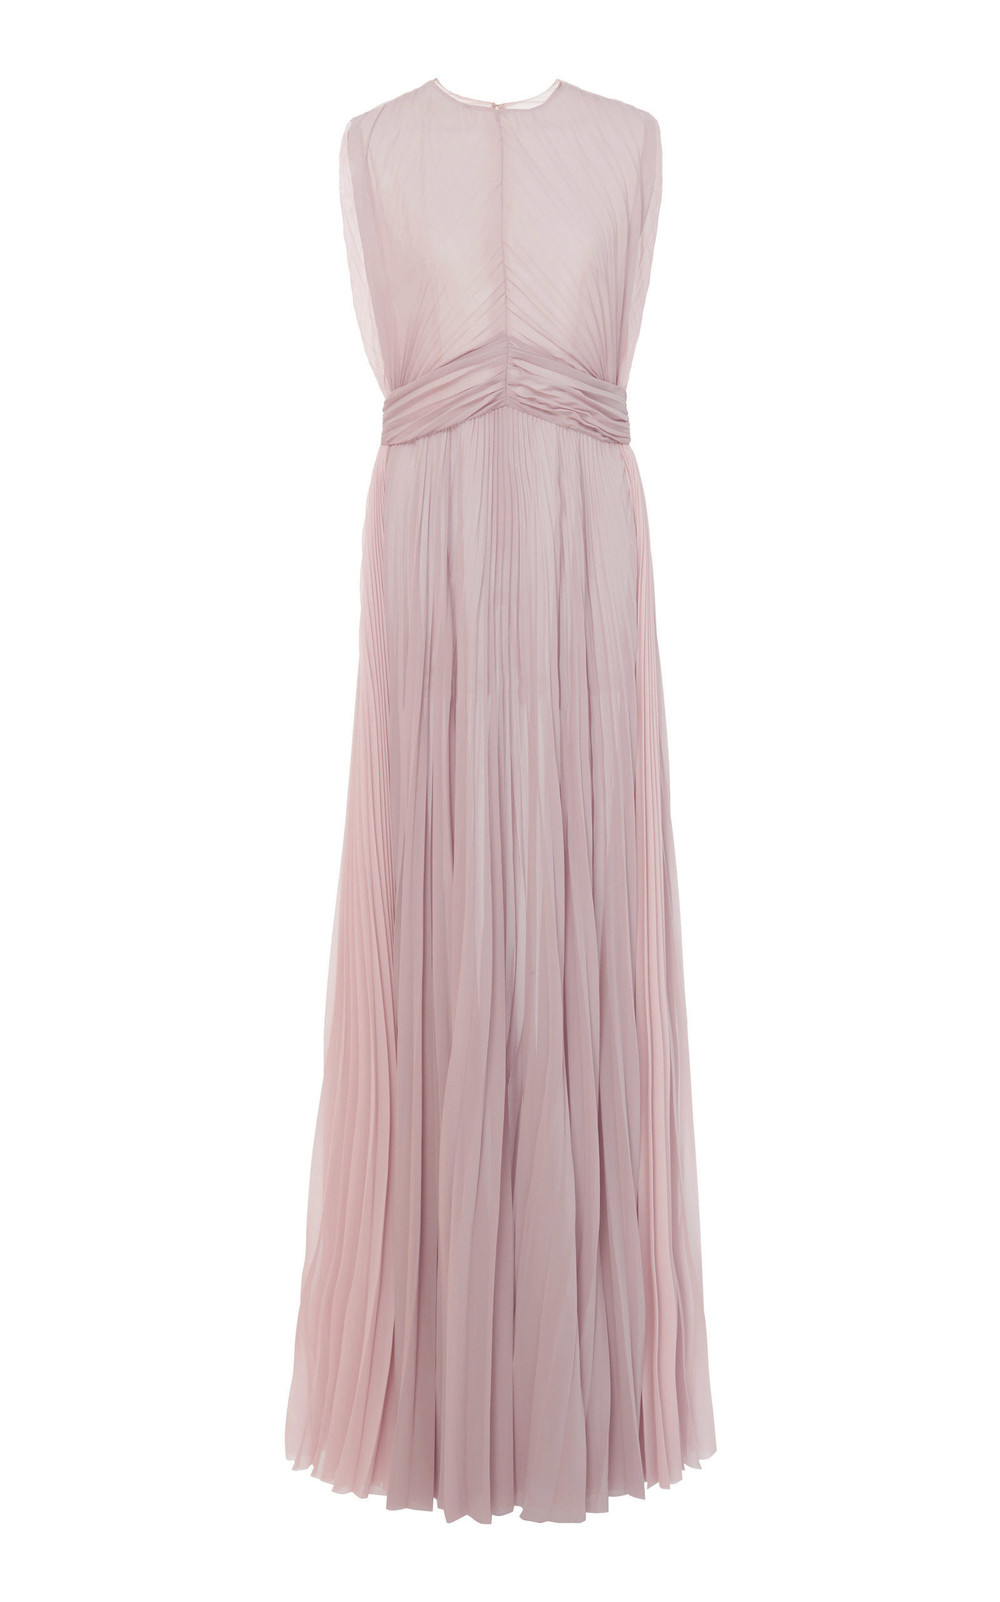 Tre by Natalie Ratabesi The Bon Bon High-Necked Pleated Chiffon Gown in purple